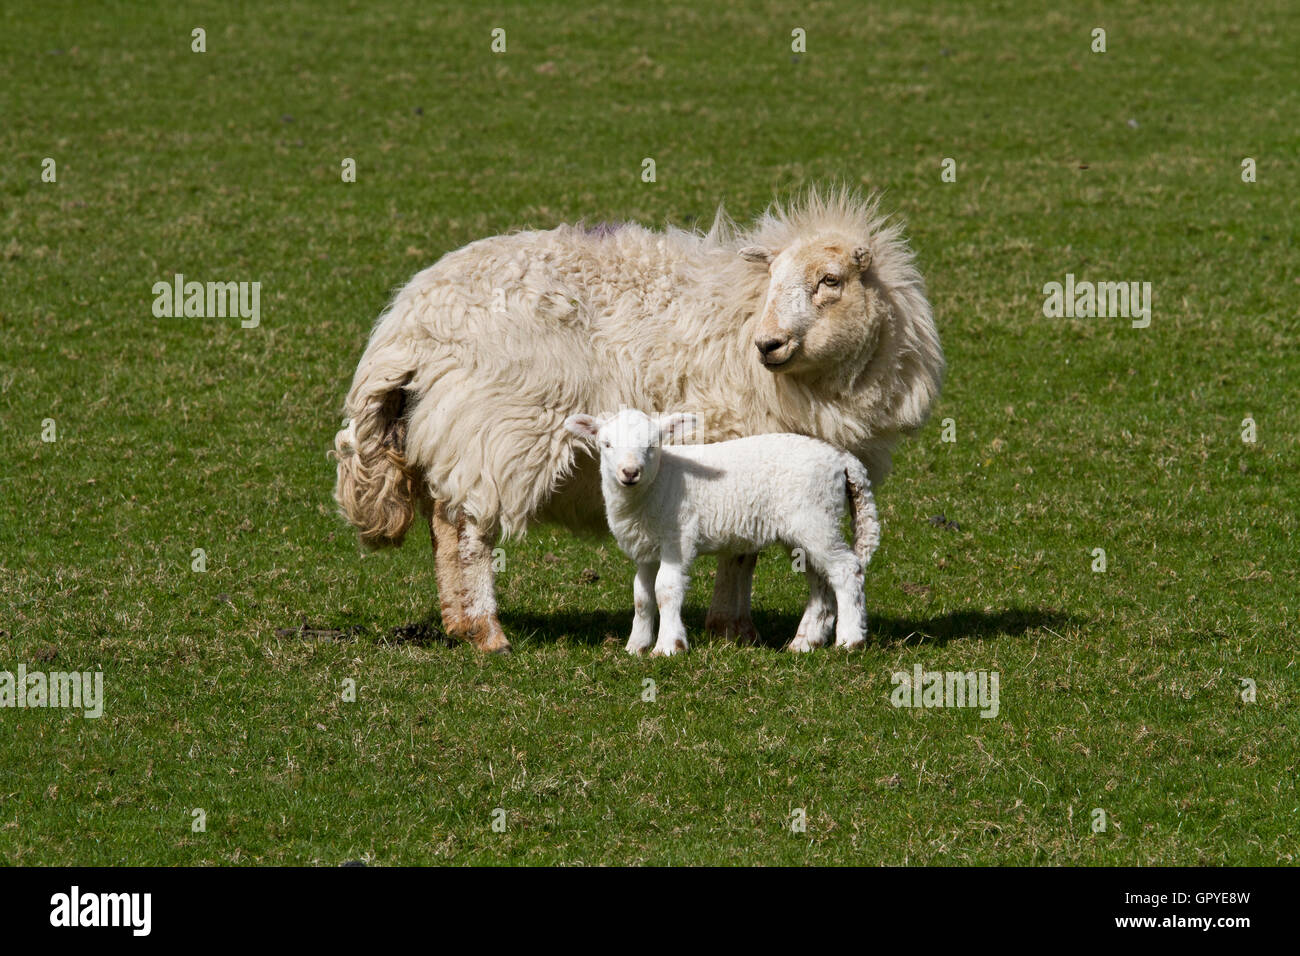 Ewe and young lamb in a sunlit field - Stock Image